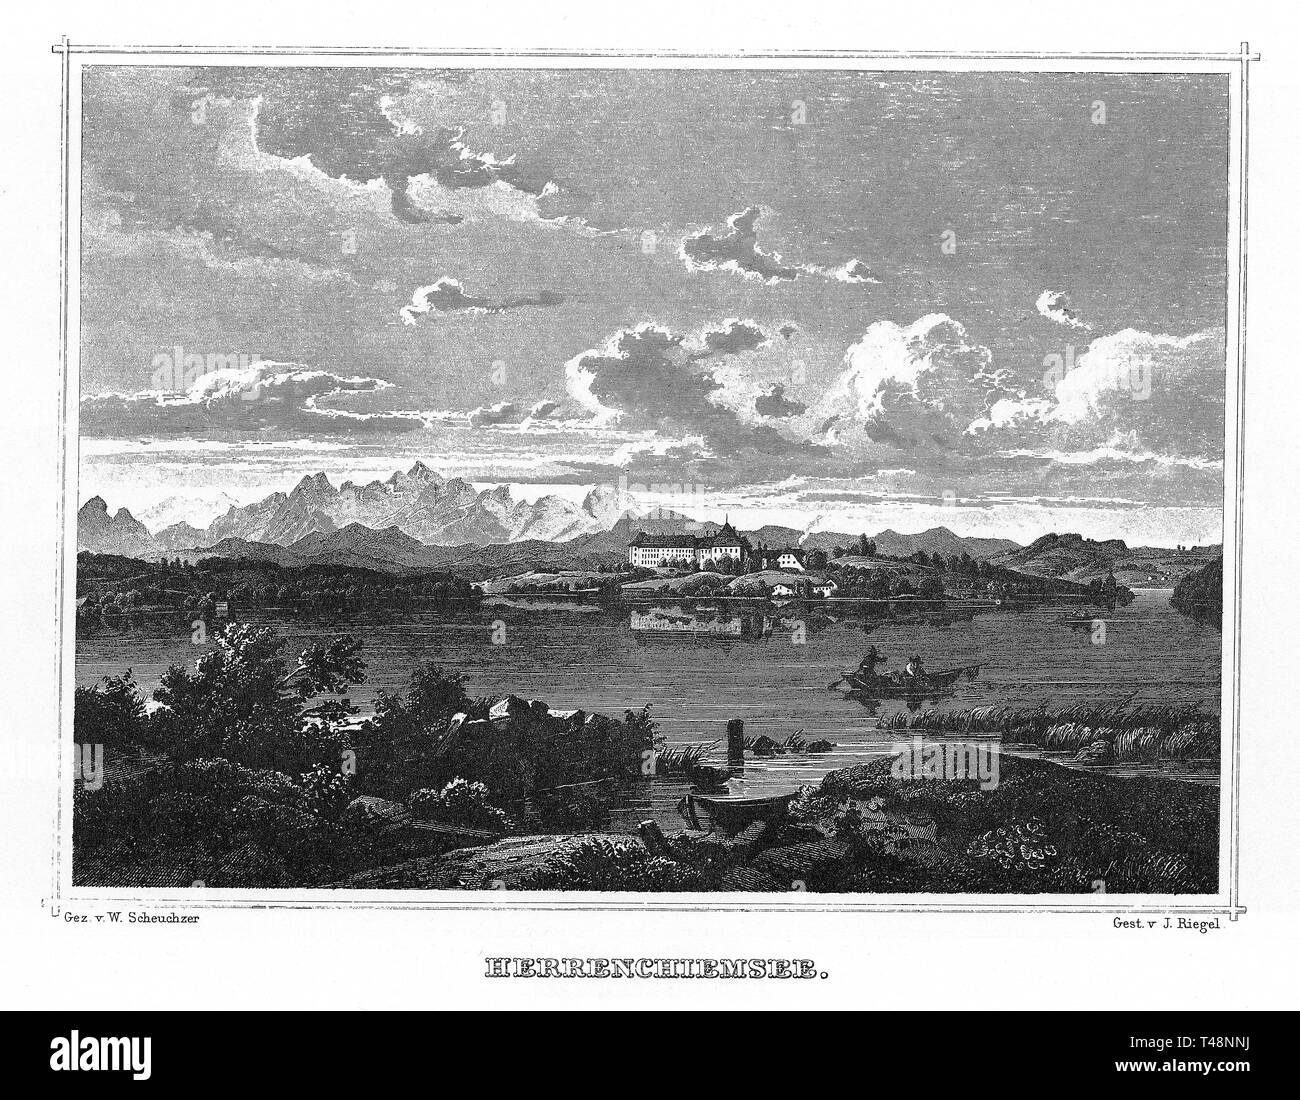 Herrenchiemsee, Chiemsee, drawing by W. Scheuchzer, engraving by J. Riegel, steel engraving 1840-1854, Kingdom of Bavaria, Germany - Stock Image